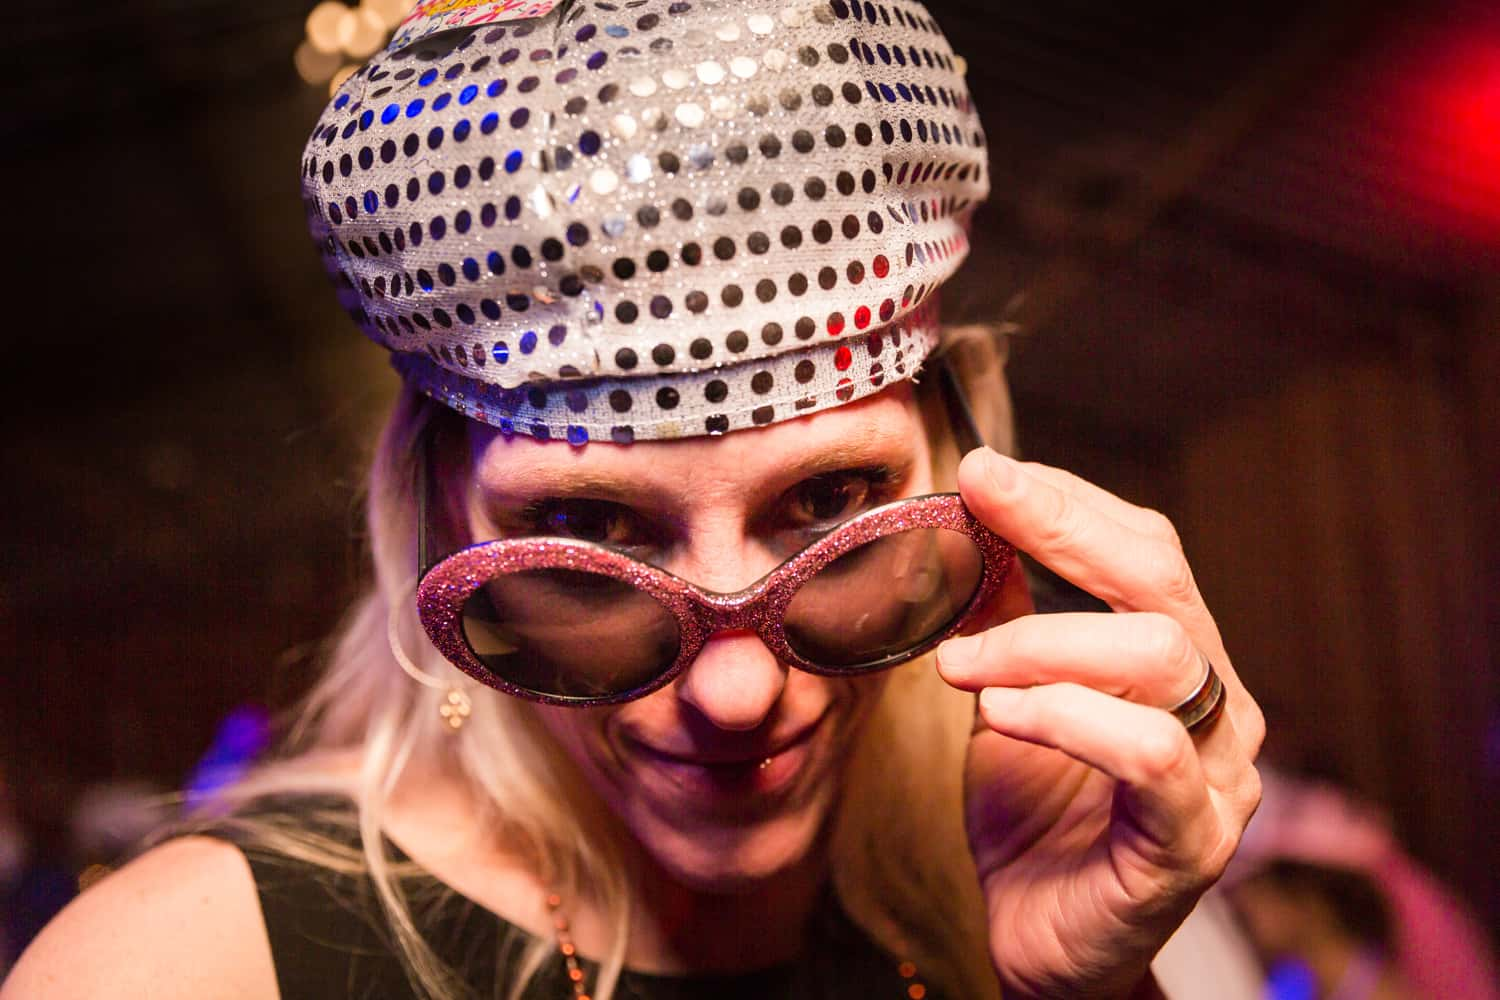 Woman wearing sequined hat and lowering sunglasses to camera